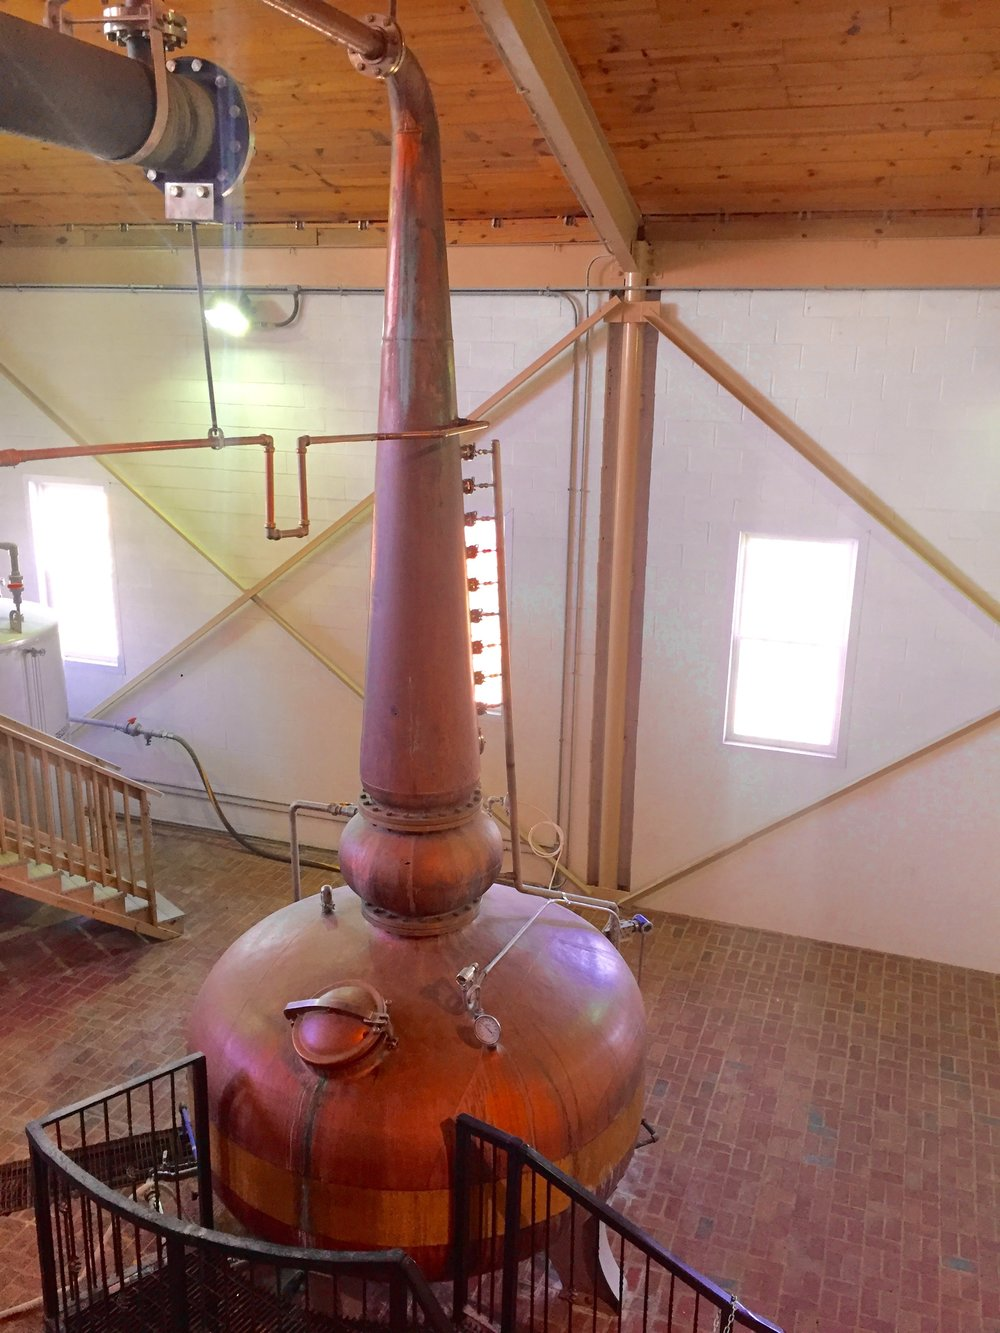 The copper still that was invented by the Willet's family.